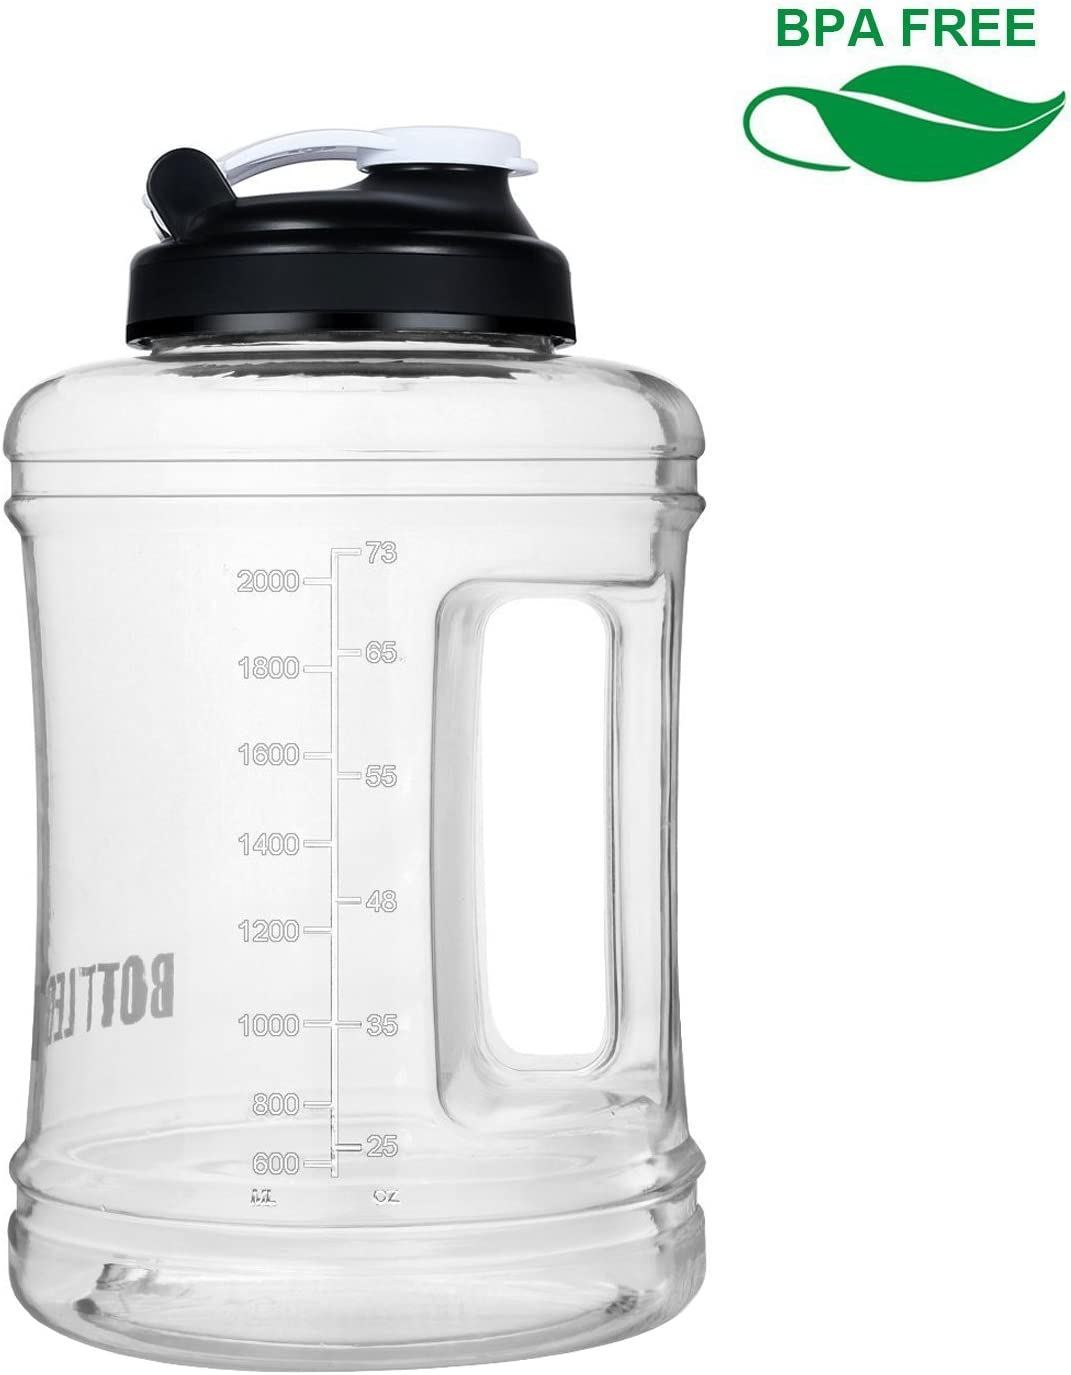 BOTTLED JOY LargeWaterBottle Half Gallon WaterJug Wide Mouth 85 oz 2.5L BPA Free Gym Sports Hydro Jug for Outdoor and Home Drinking